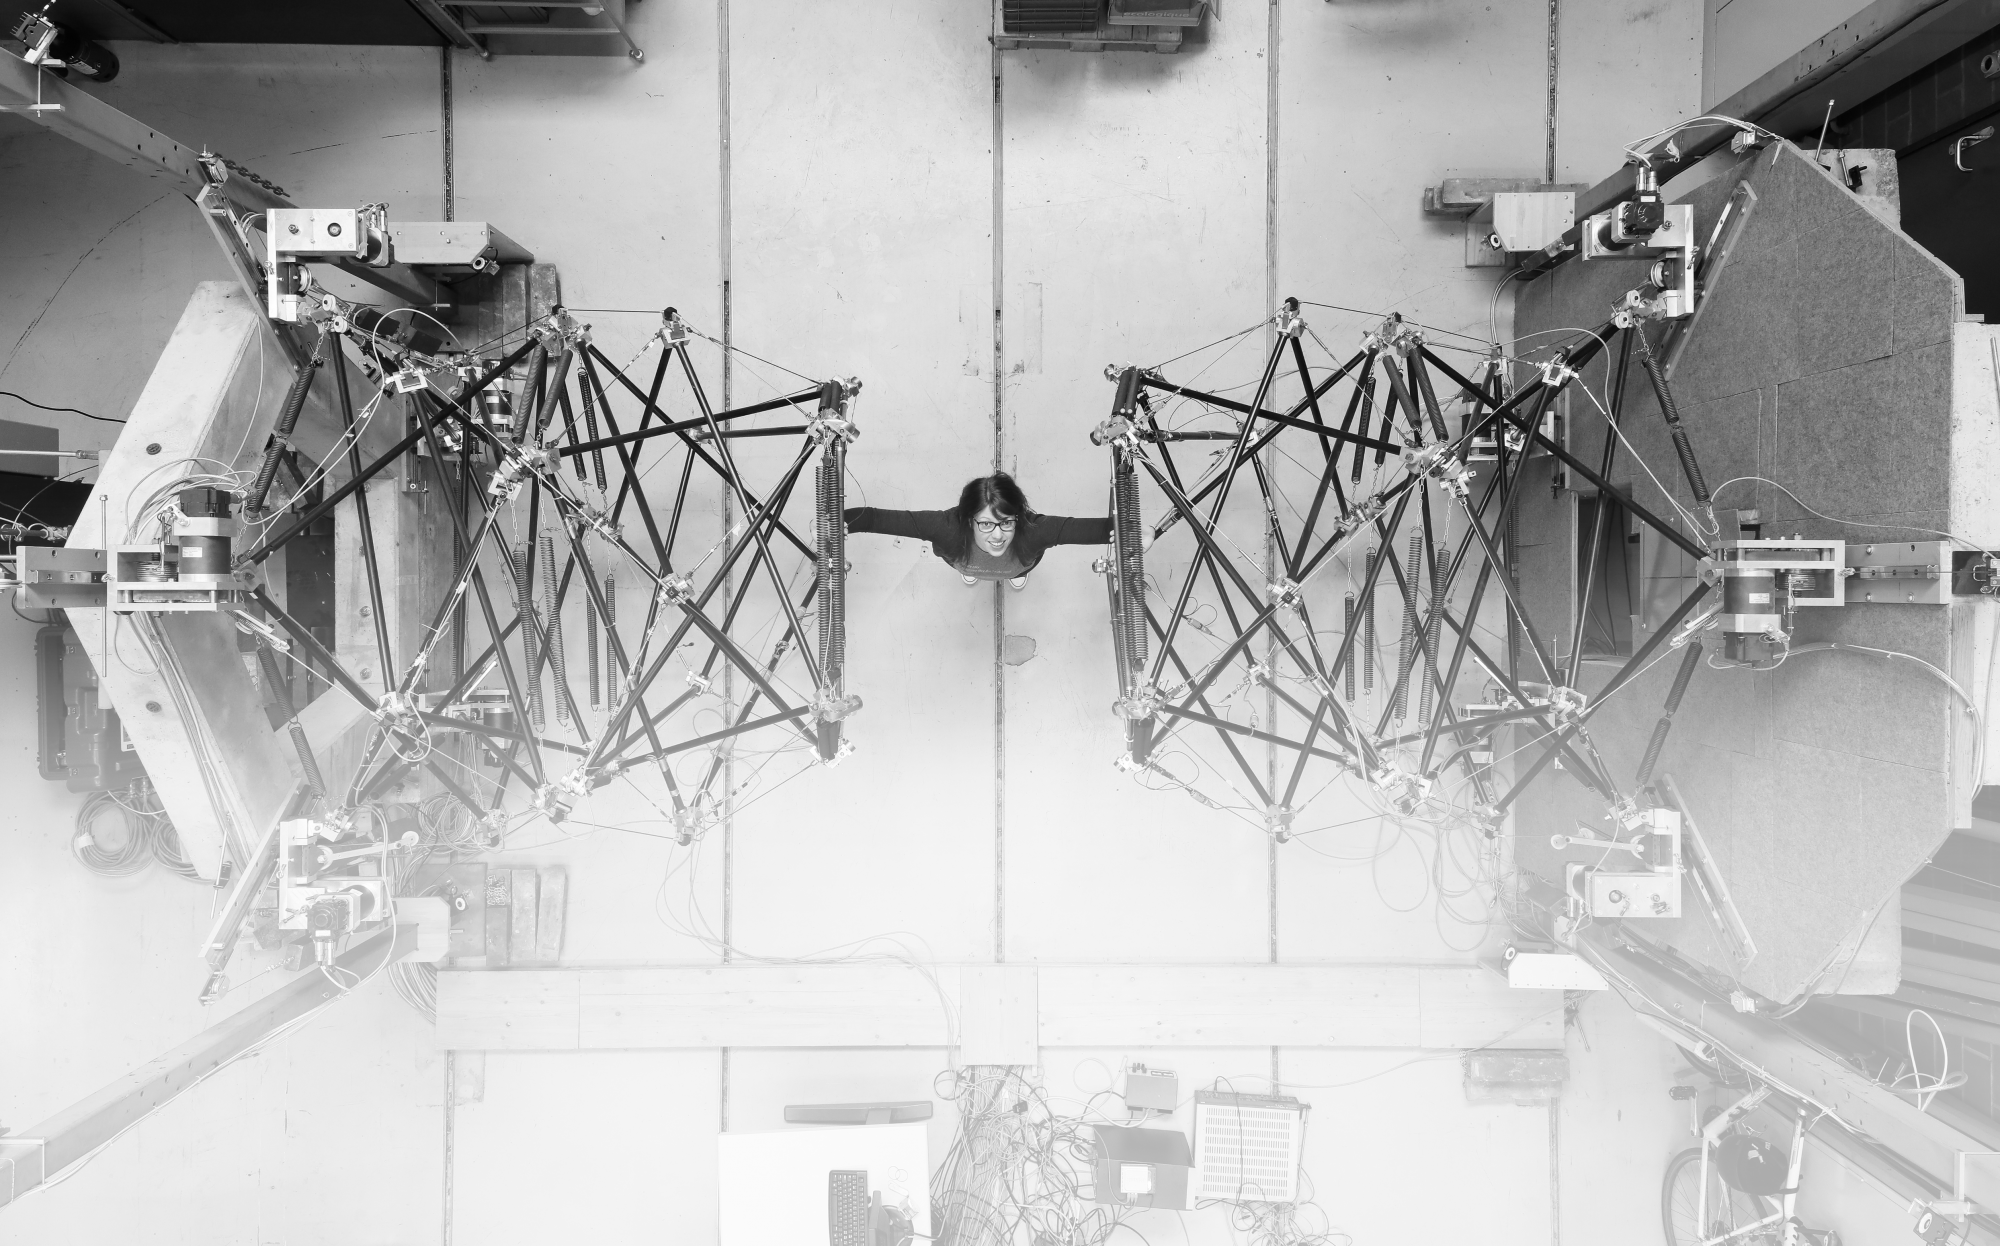 Sychterz Modular Adaptive Resilient Transformable Infrastructure Laboratory